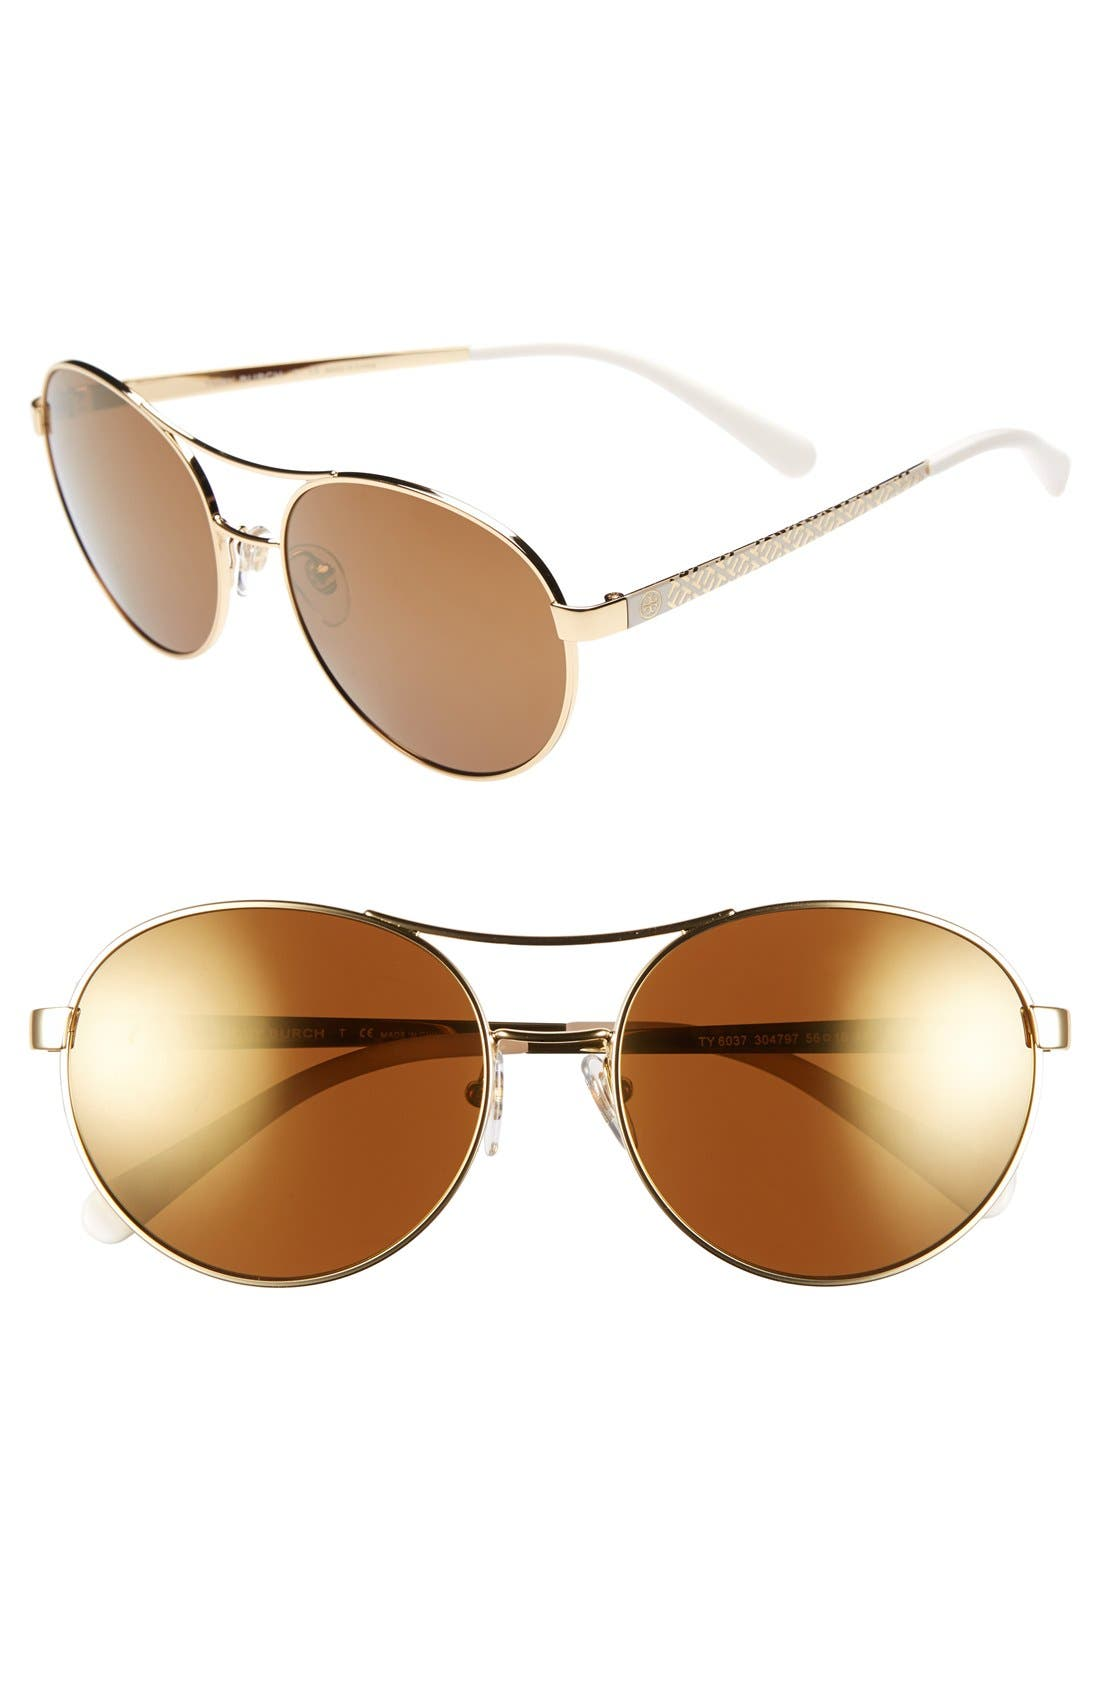 Alternate Image 1 Selected - Tory Burch 'M Round' 56mm Metal Sunglasses